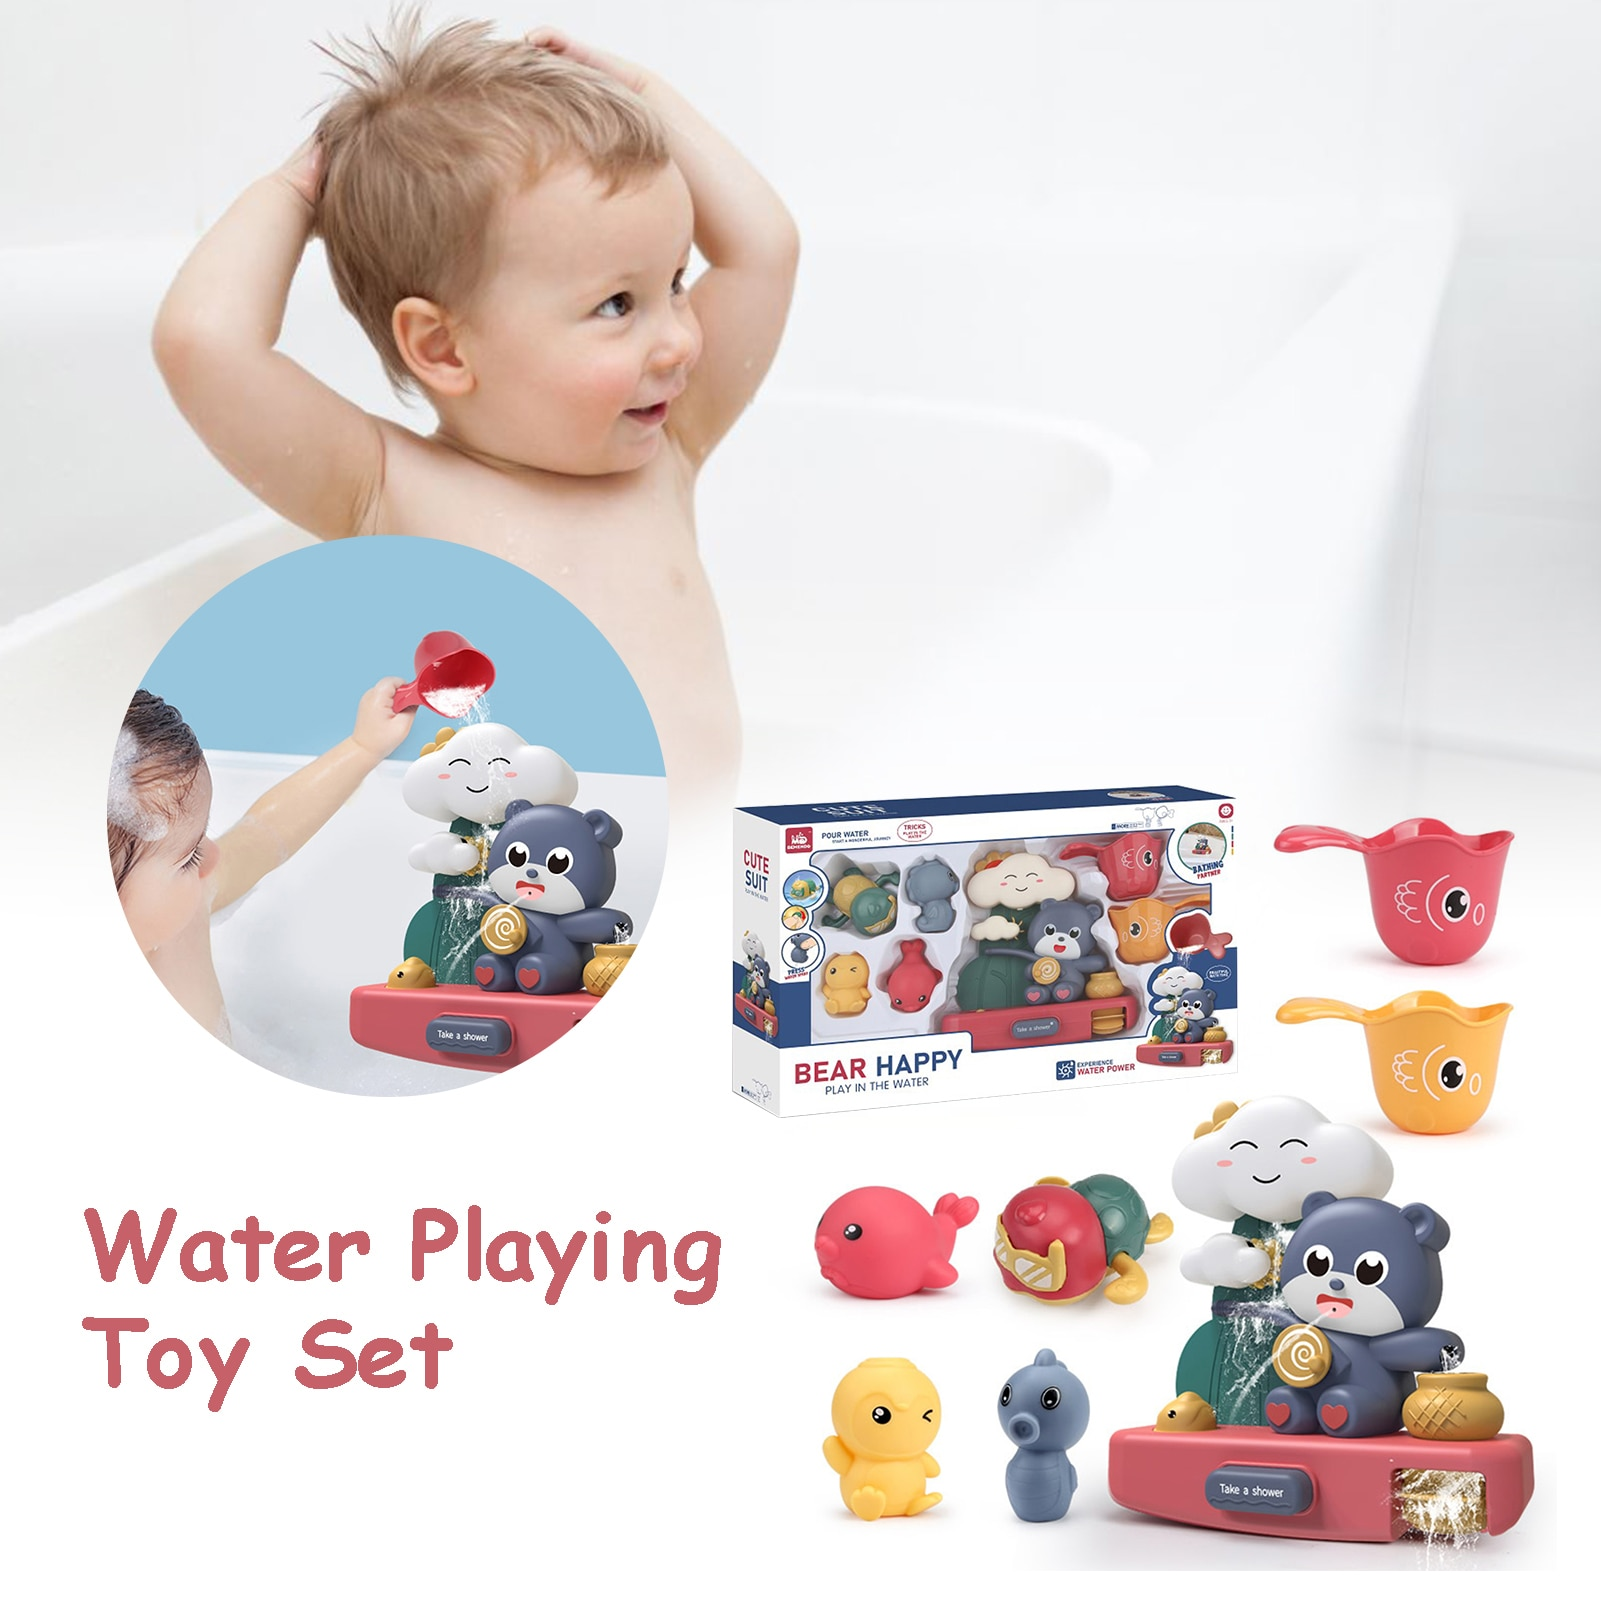 High Quality Cute Baby Bath Toys Interesting Children Water Playing Toy Set Small Waterfall Gift For Kids Bathroom enlarge